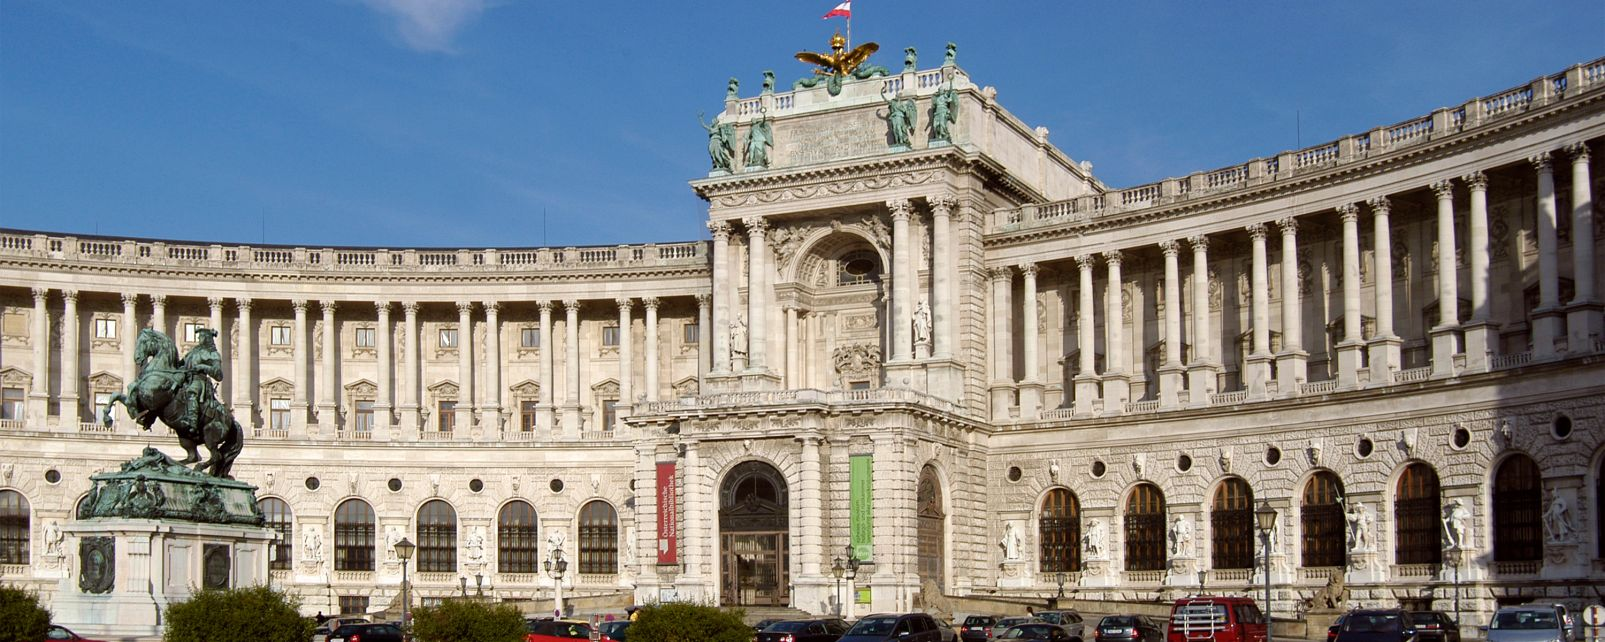 The Imperial Palace, Castles, Vienna, Austria